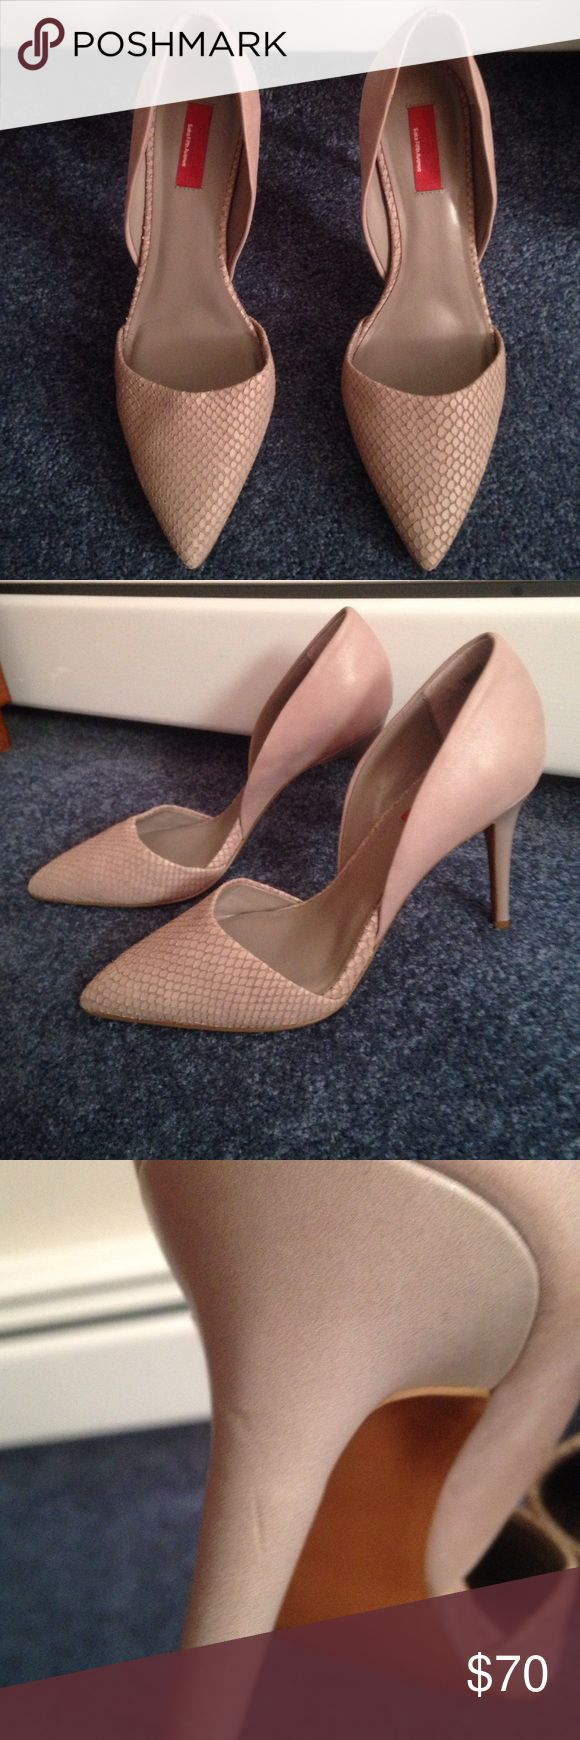 """Taupe Saks RED Elisa pointy toe pumps Super chic taupe-grey (color says Ash) Elisa pointed toe pumps from Saks Fifth Avenue RED. 4"""" heel, leather upper. Size 39 1/2. Can be paired with a dress, skirt, or boyfriend jeans! Never worn, small scuff on back of left heel that was there when bought. Love these shoes, but they're too big for me. Saks Fifth Avenue Shoes Heels"""